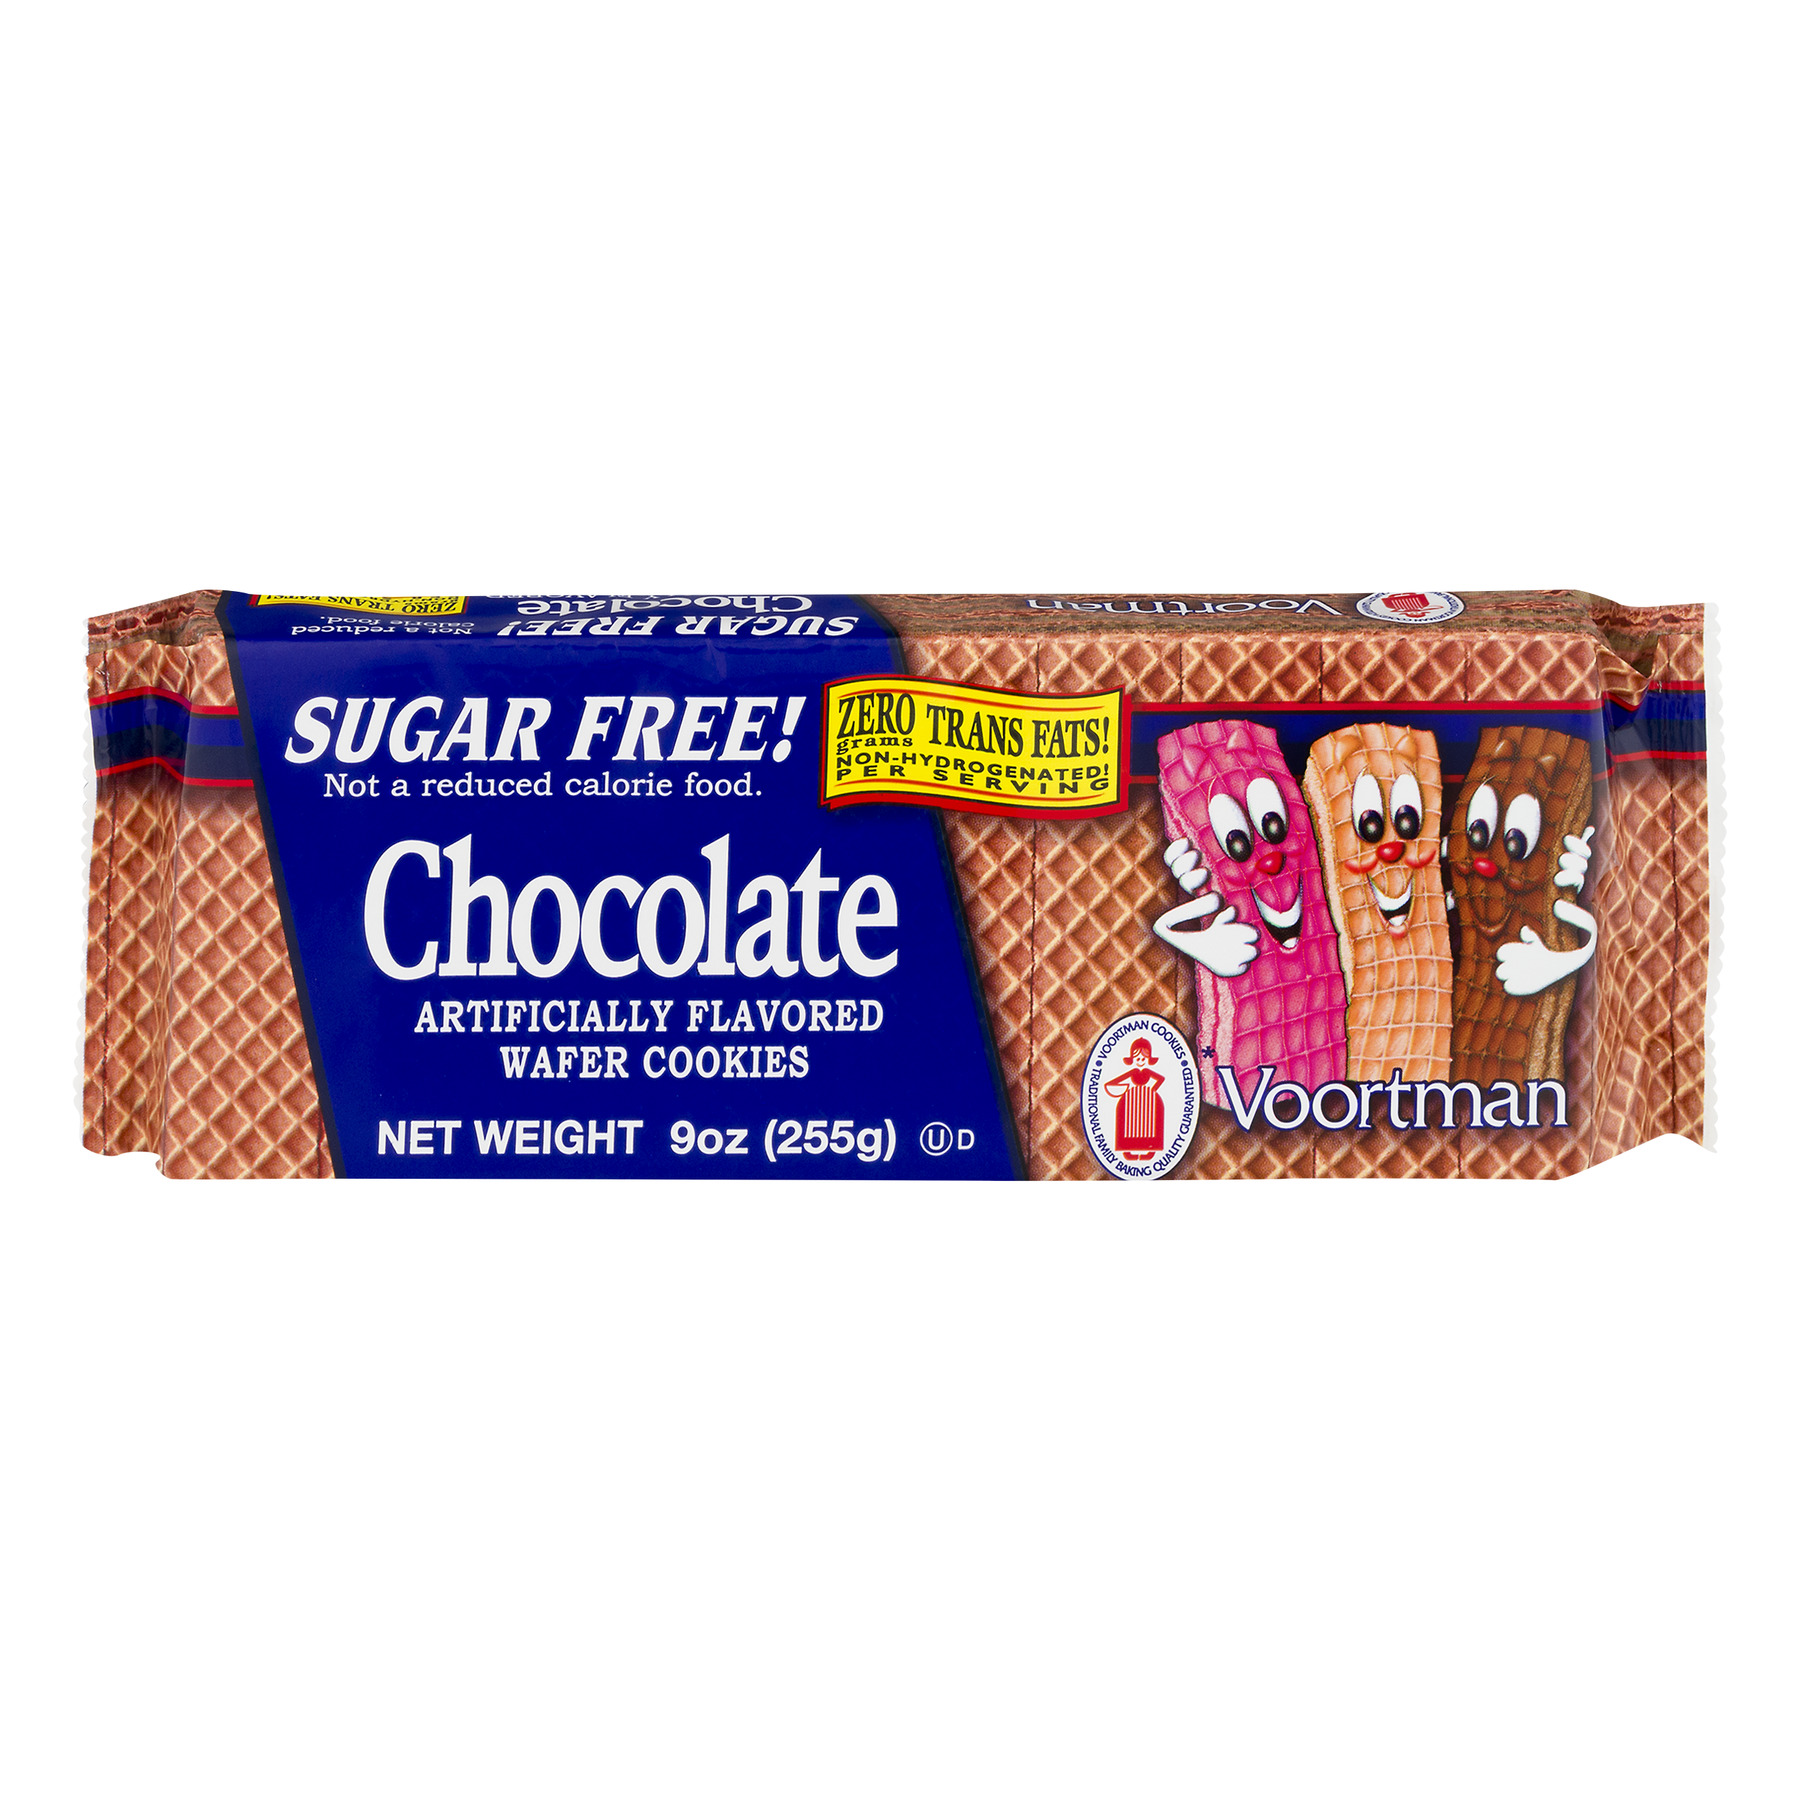 Voortman Sugar Free Wafer Cookies Chocolate, 9.0 OZ